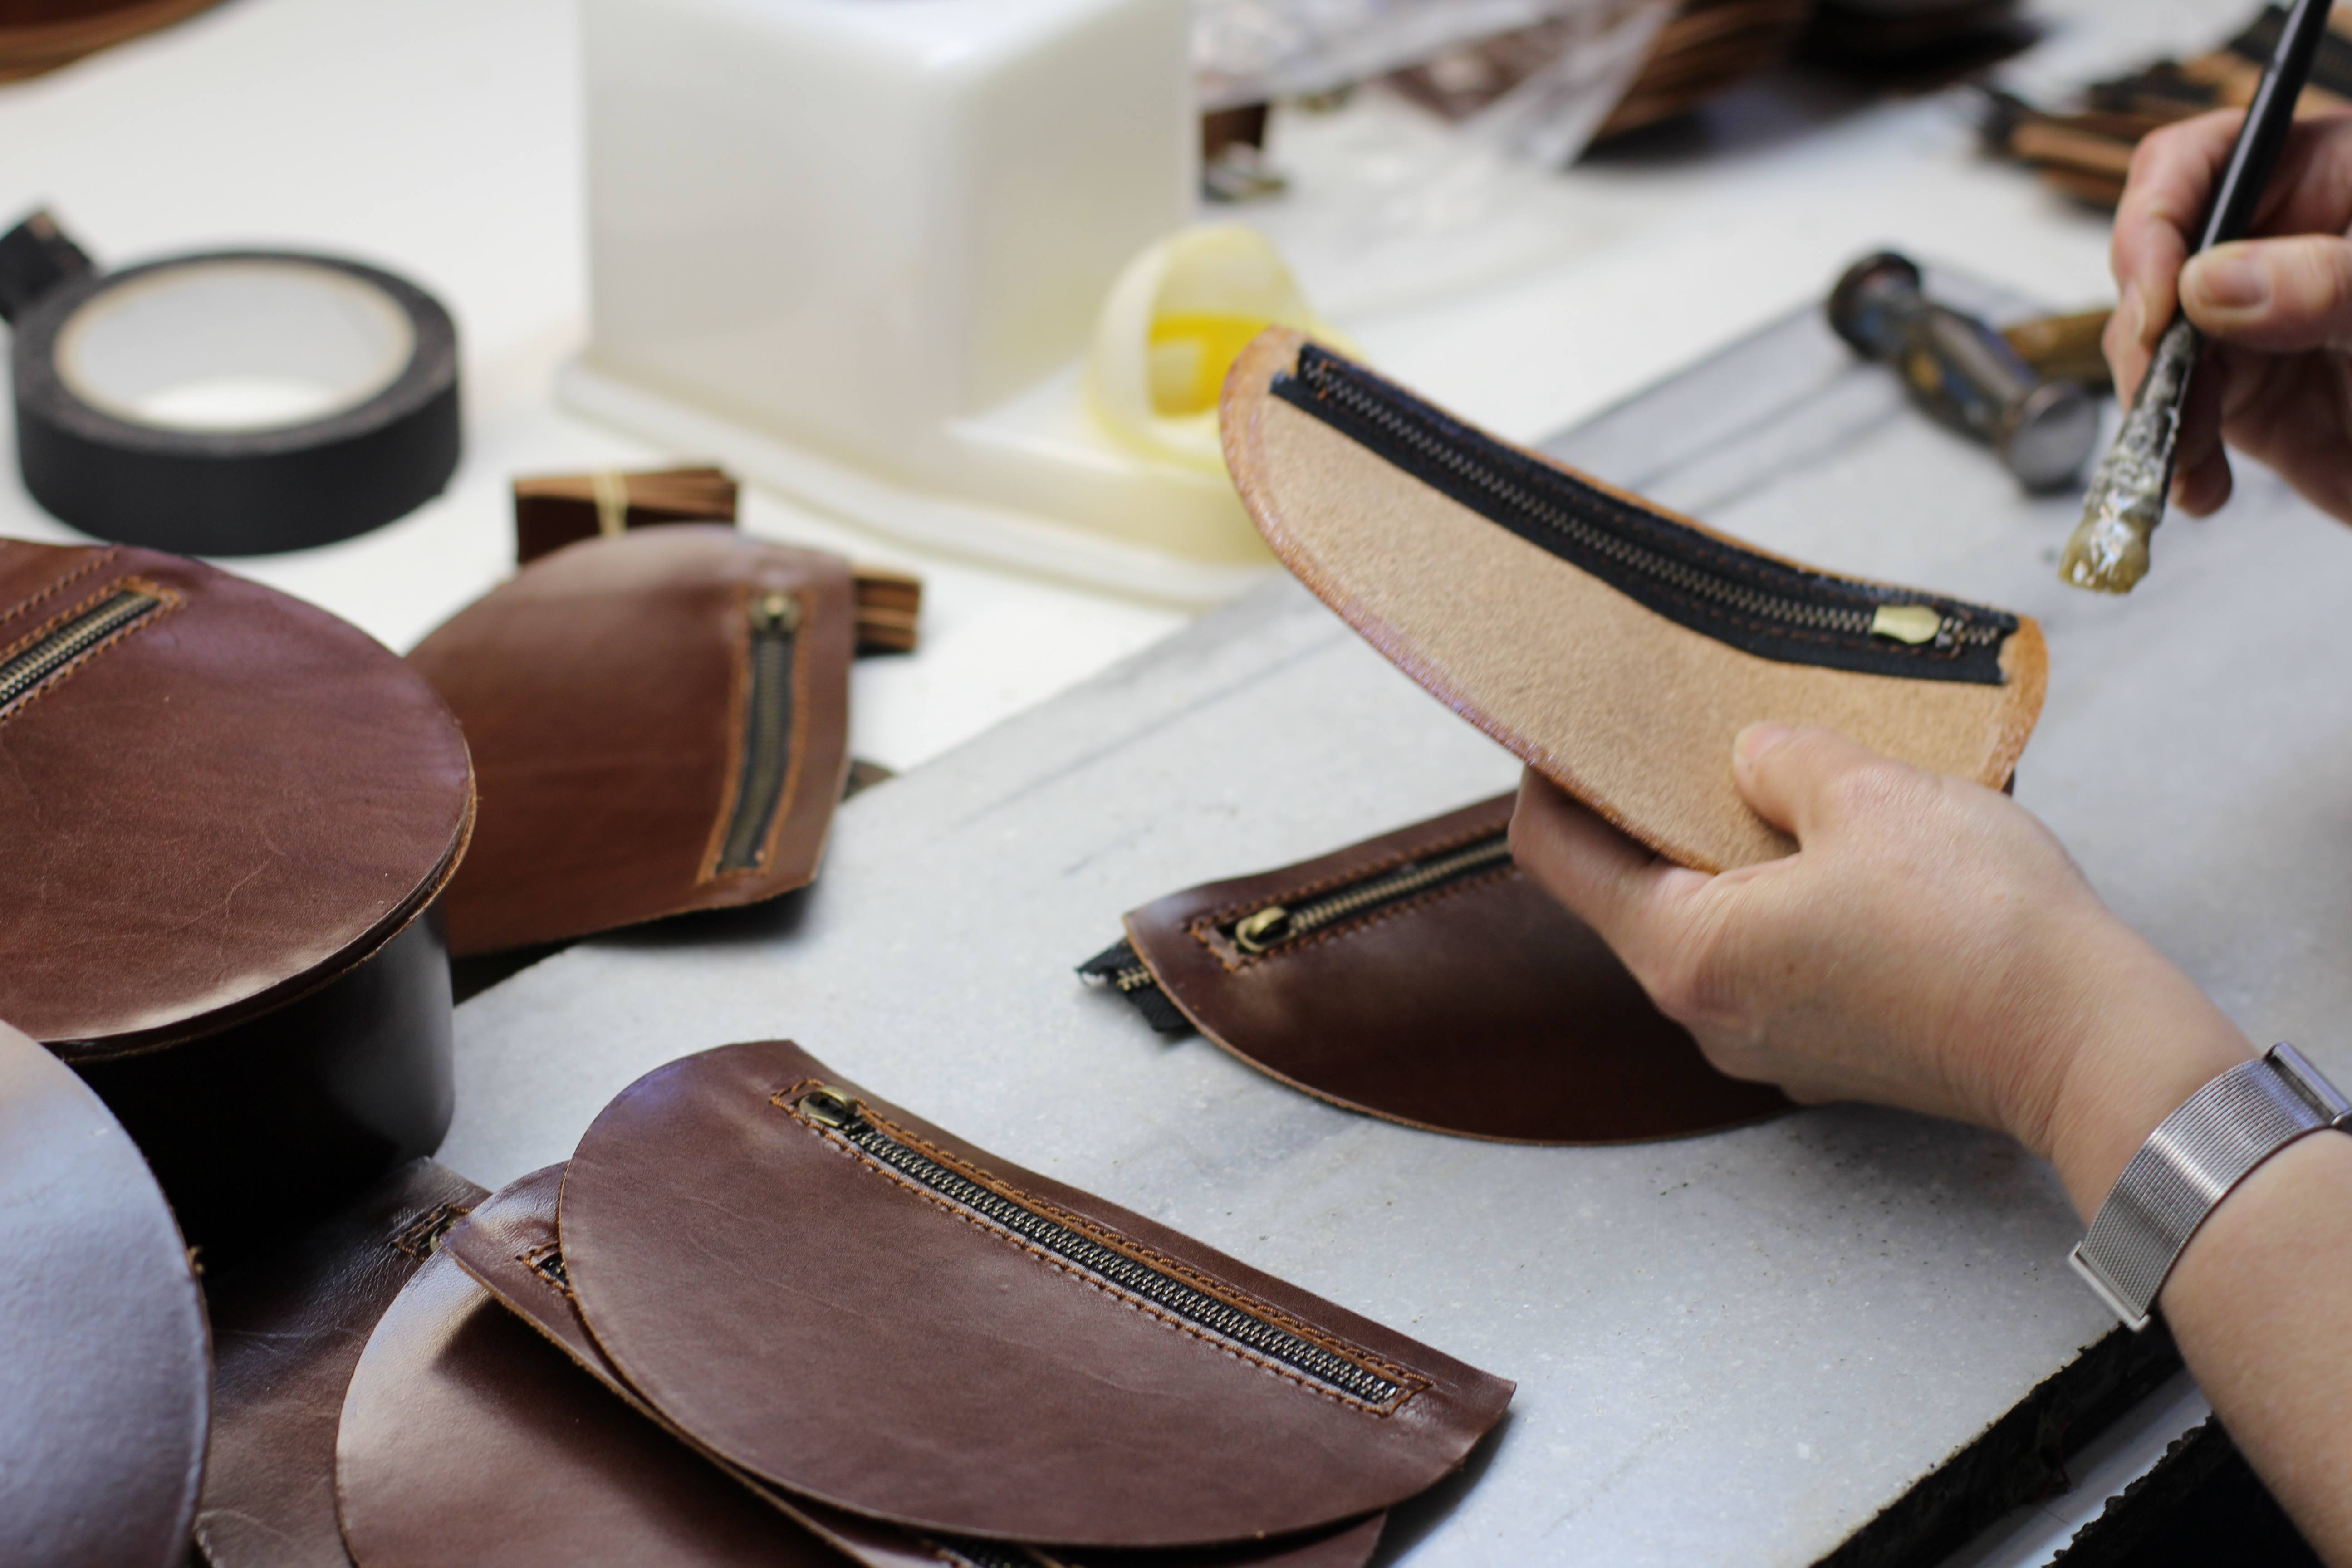 """All our bags are made by hand and unique. They are never going to be exact plastic copies, all have little differences because leather is a natural material,"" Miranda says."